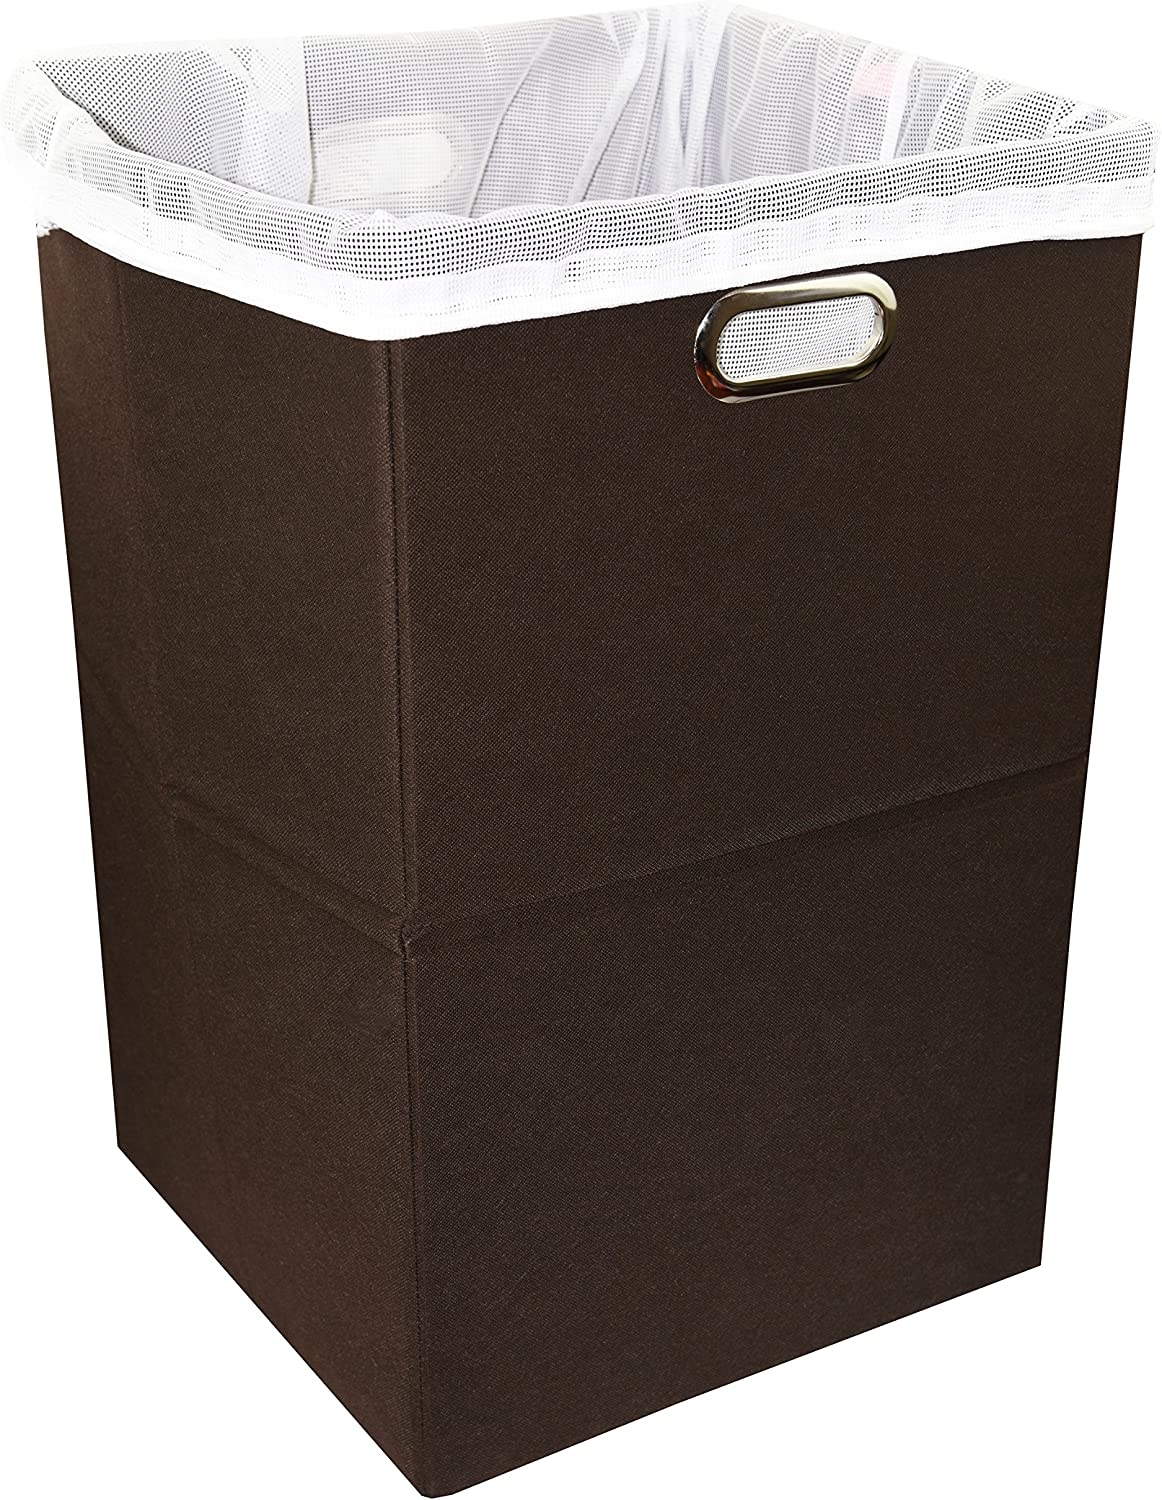 Premium Foldable Large Laundry Hamper with Laundry Bag - Durable Non-Woven Fabric, Anti-Mold Plastic Board, Extra-Large Size, Space-Saving & Compact Clothes Basket with Metal Handles (Brown)